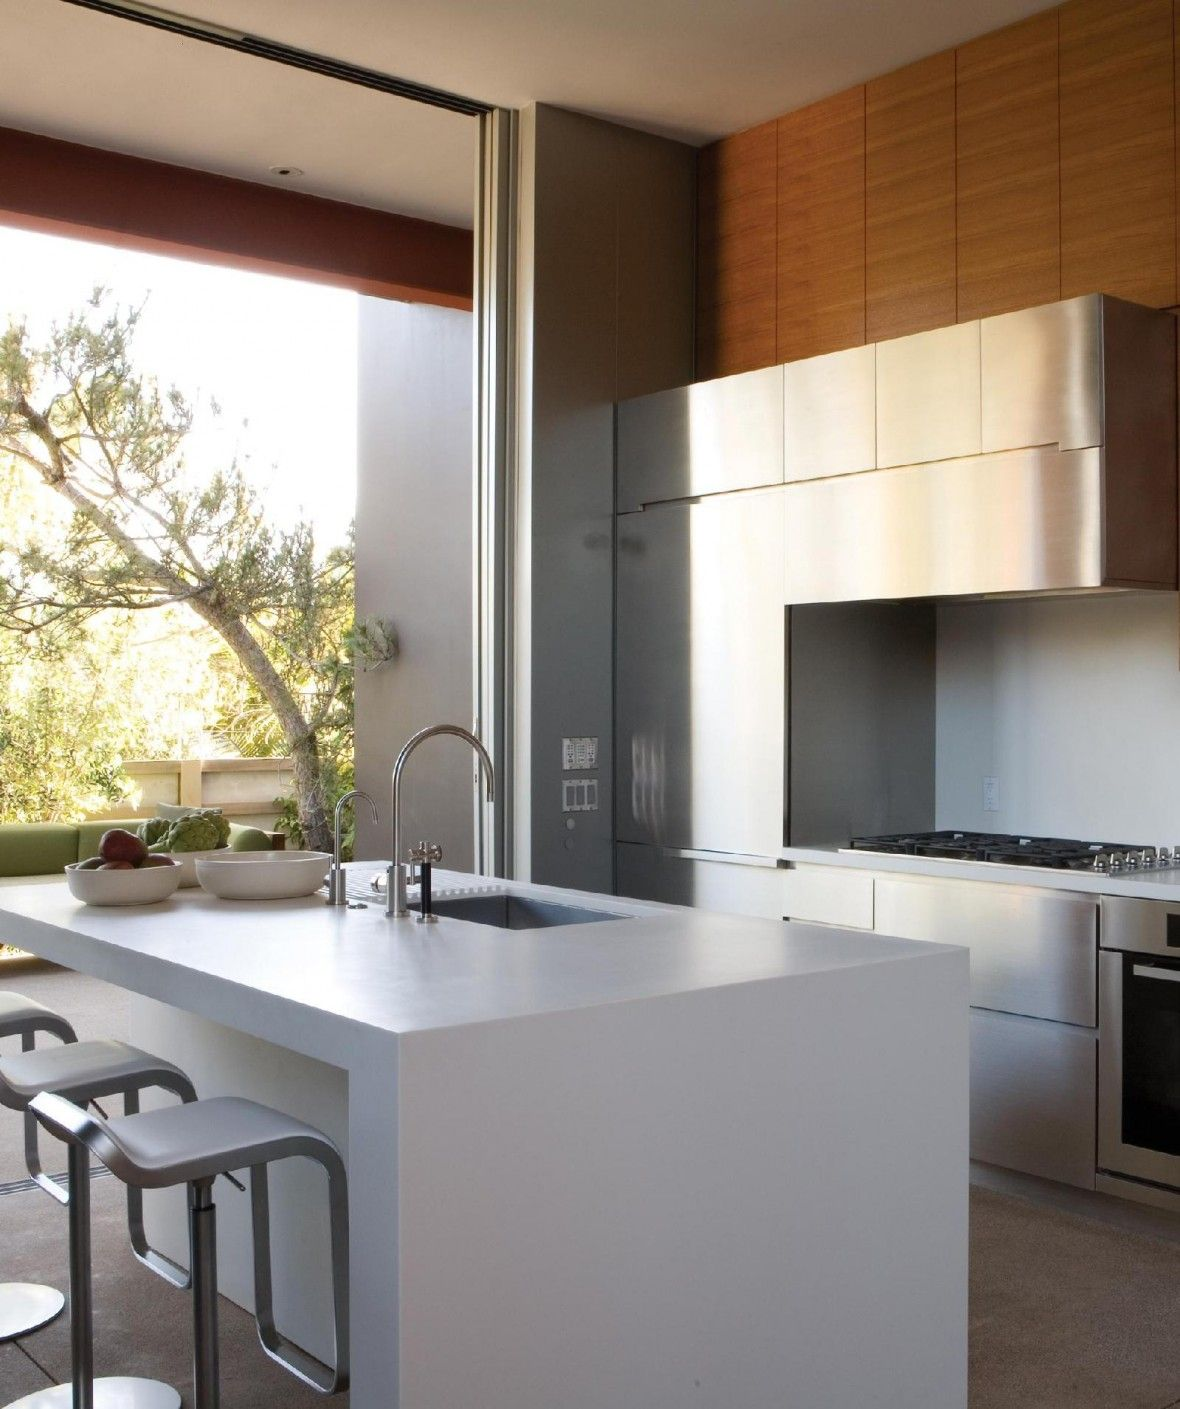 Useful Tricks To Maximize The Space Of Your Small Kitchen   Interior Design    Reducing The Appliances And Utensils Used In Your Kitchen And Increasing  The ...